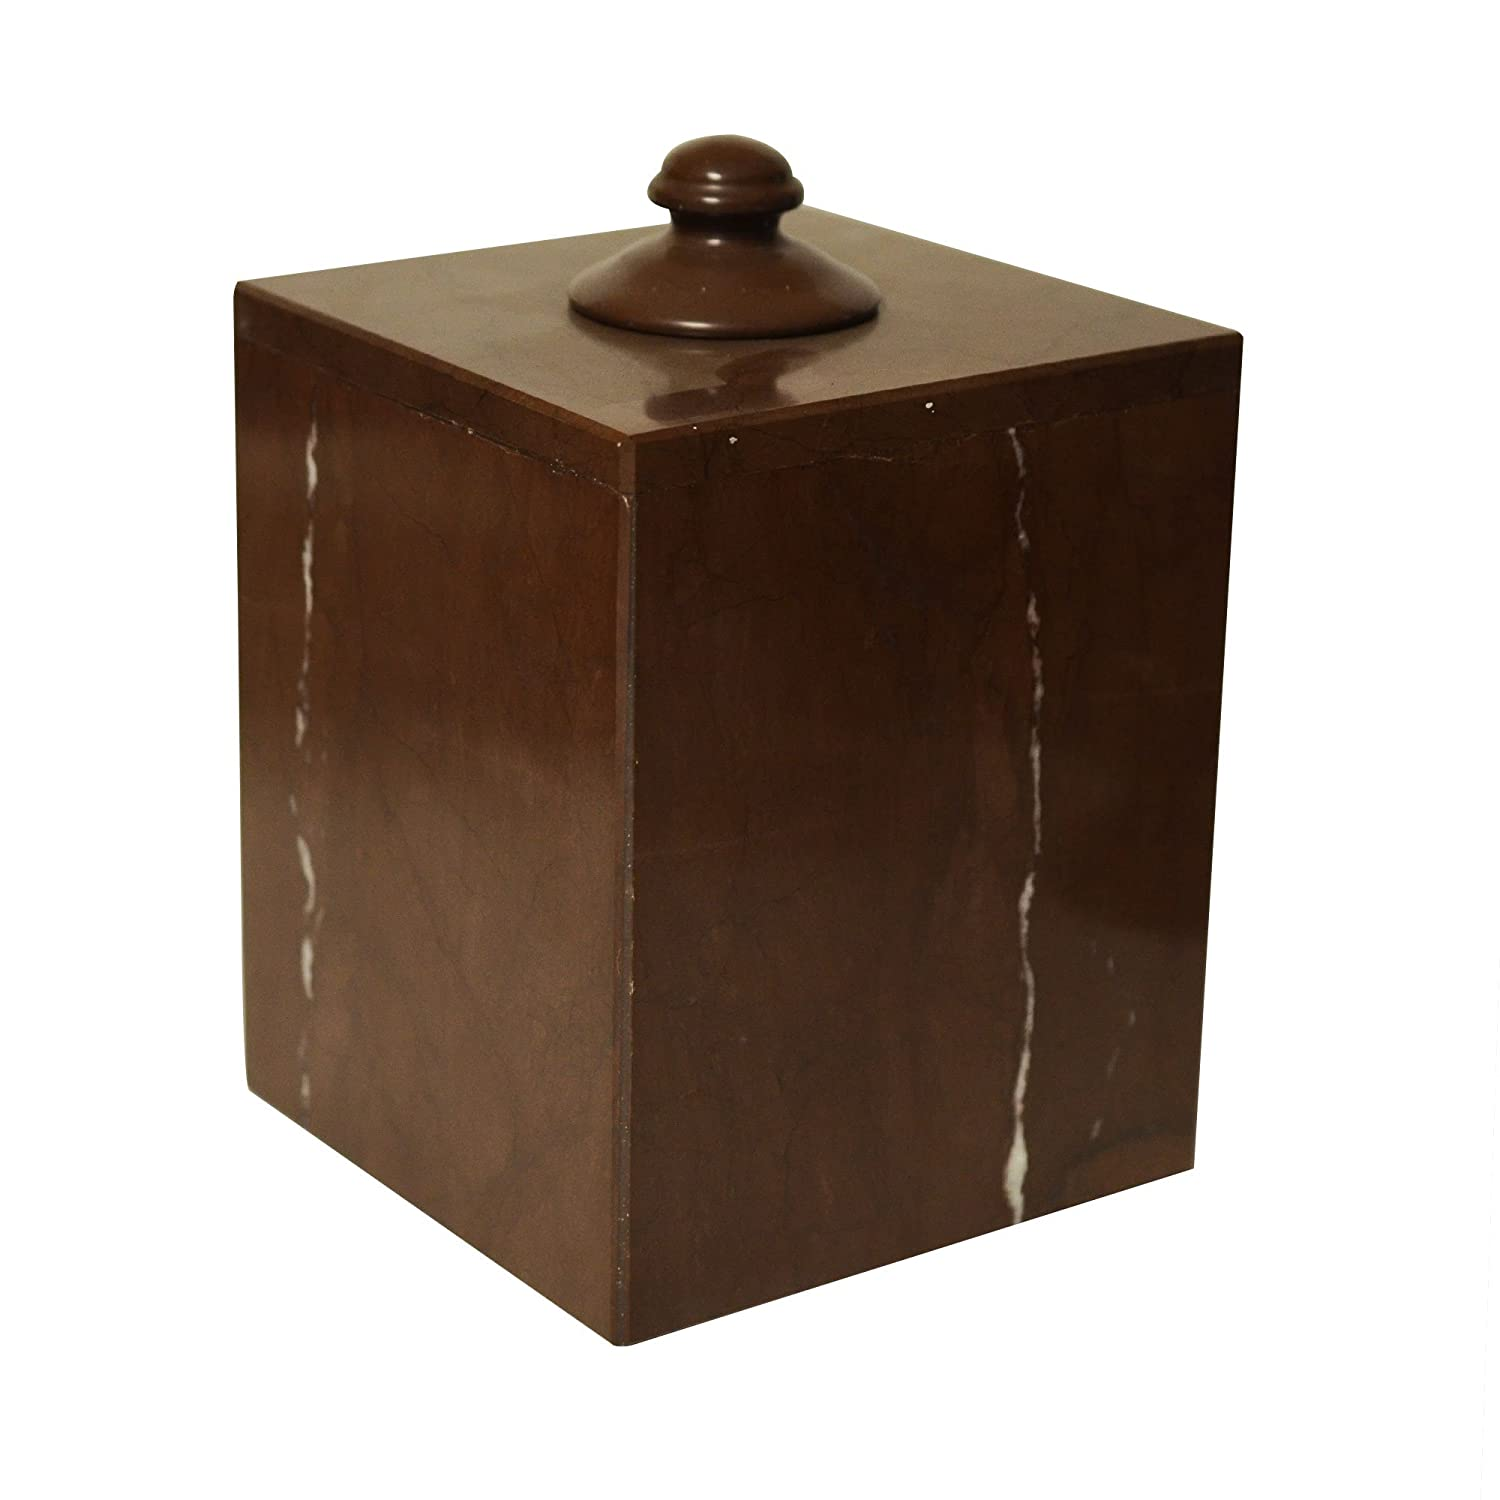 Polished Marble Tissue Box Cover, Chocolate Shower and Bathroom Accessory